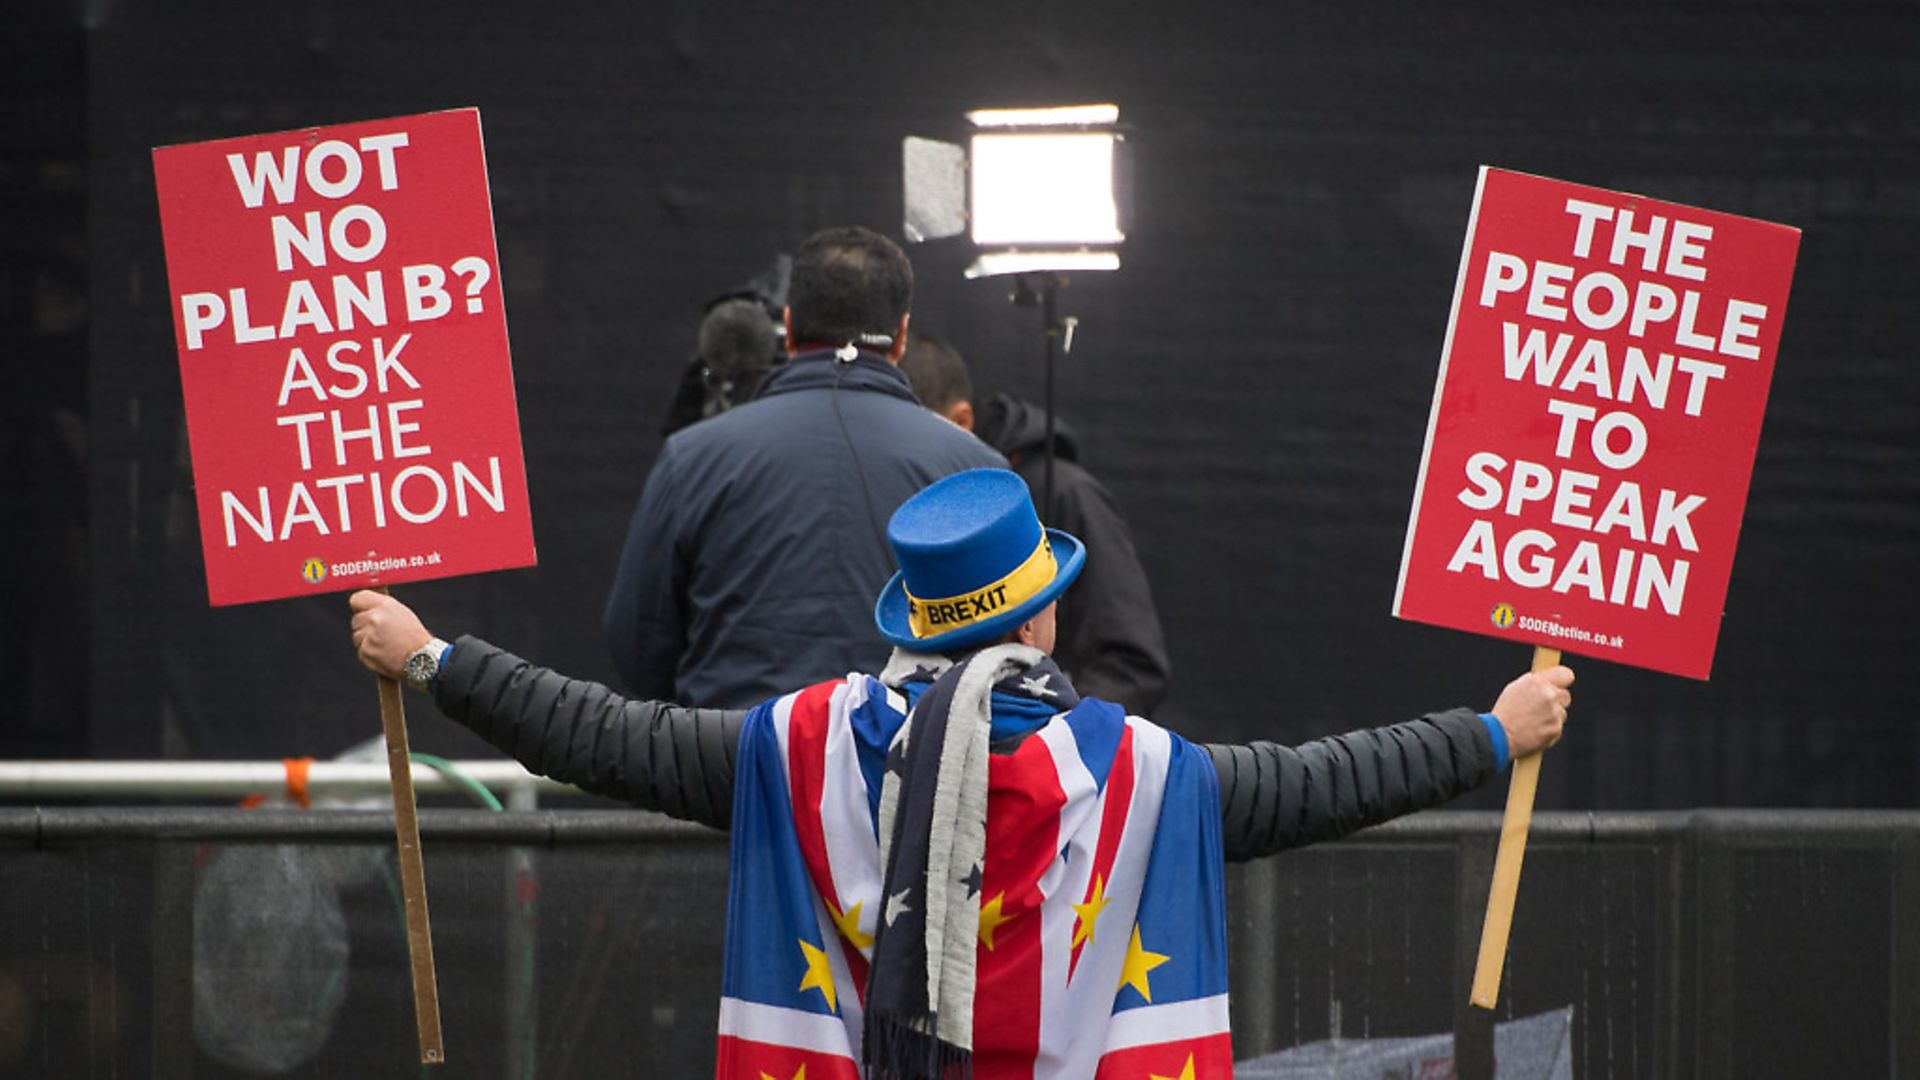 Anti Brexit protestor Steve Bray outside the Houses of Parliament. Photograph: Dominic Lipinski/PA. - Credit: PA Wire/PA Images